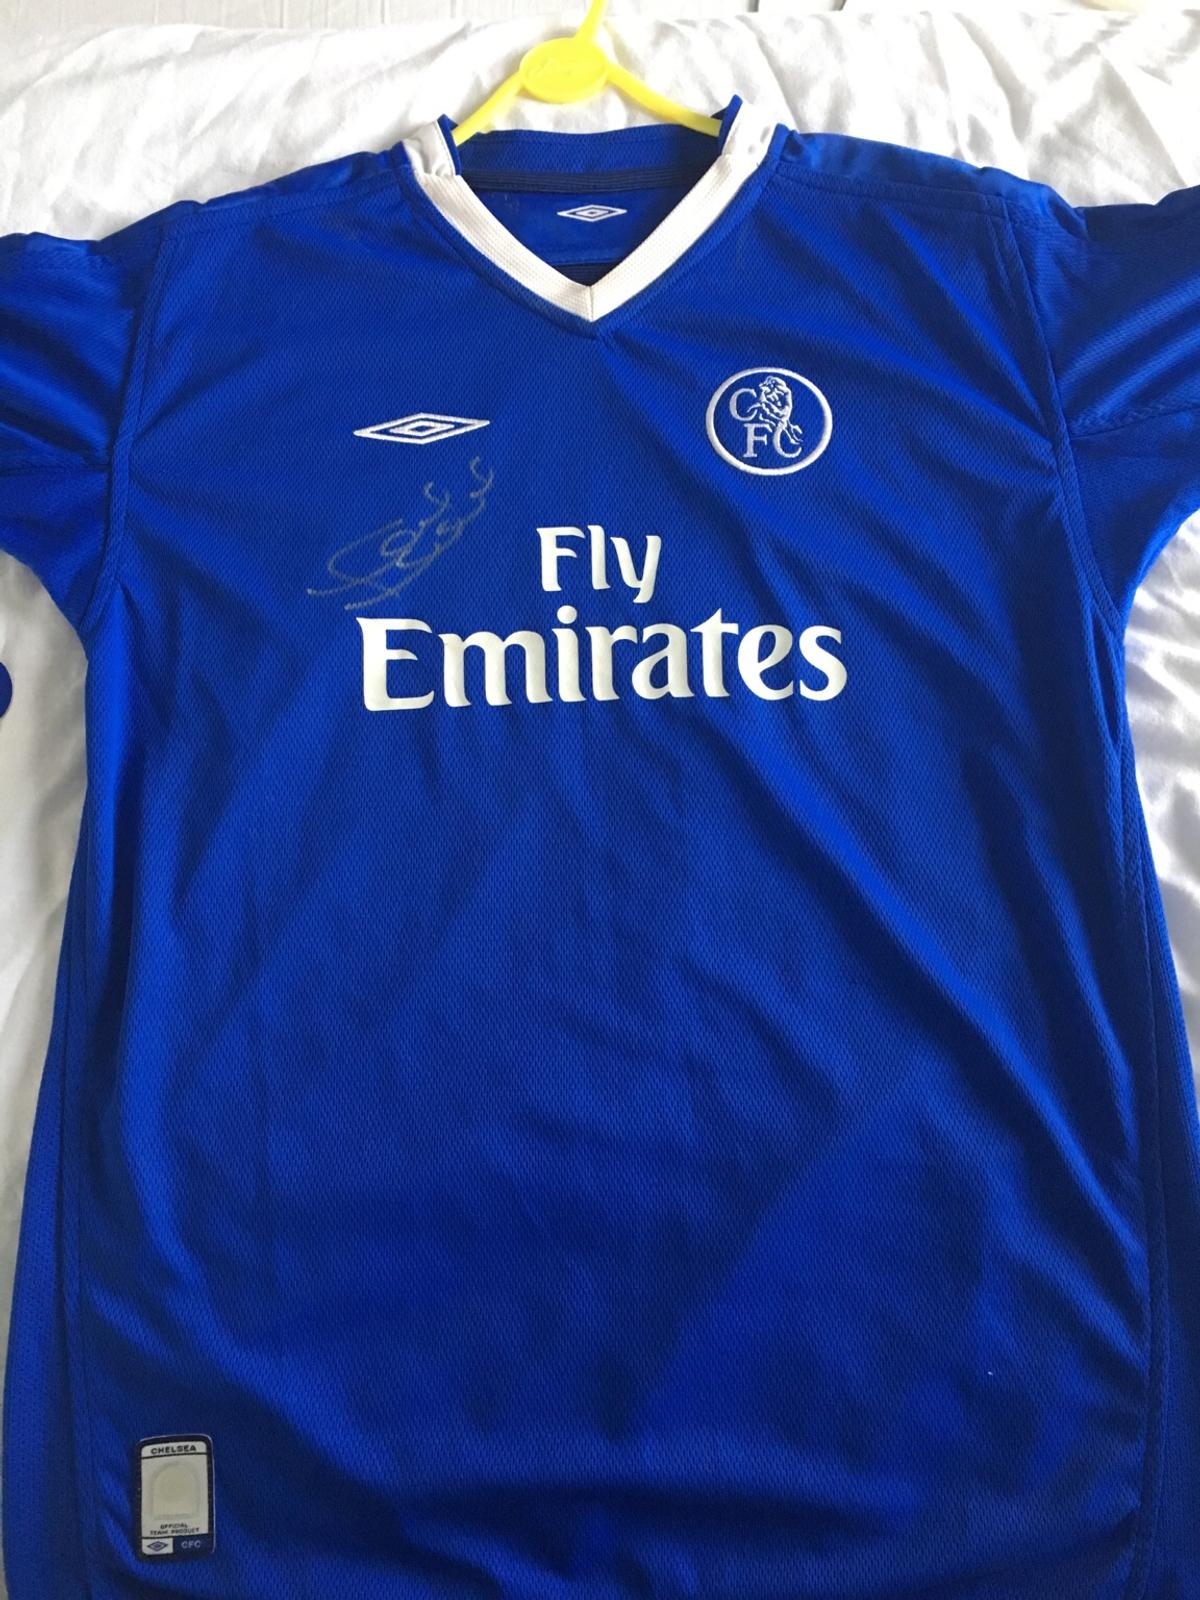 the best attitude 0c074 f5402 Signed Chelsea shirt